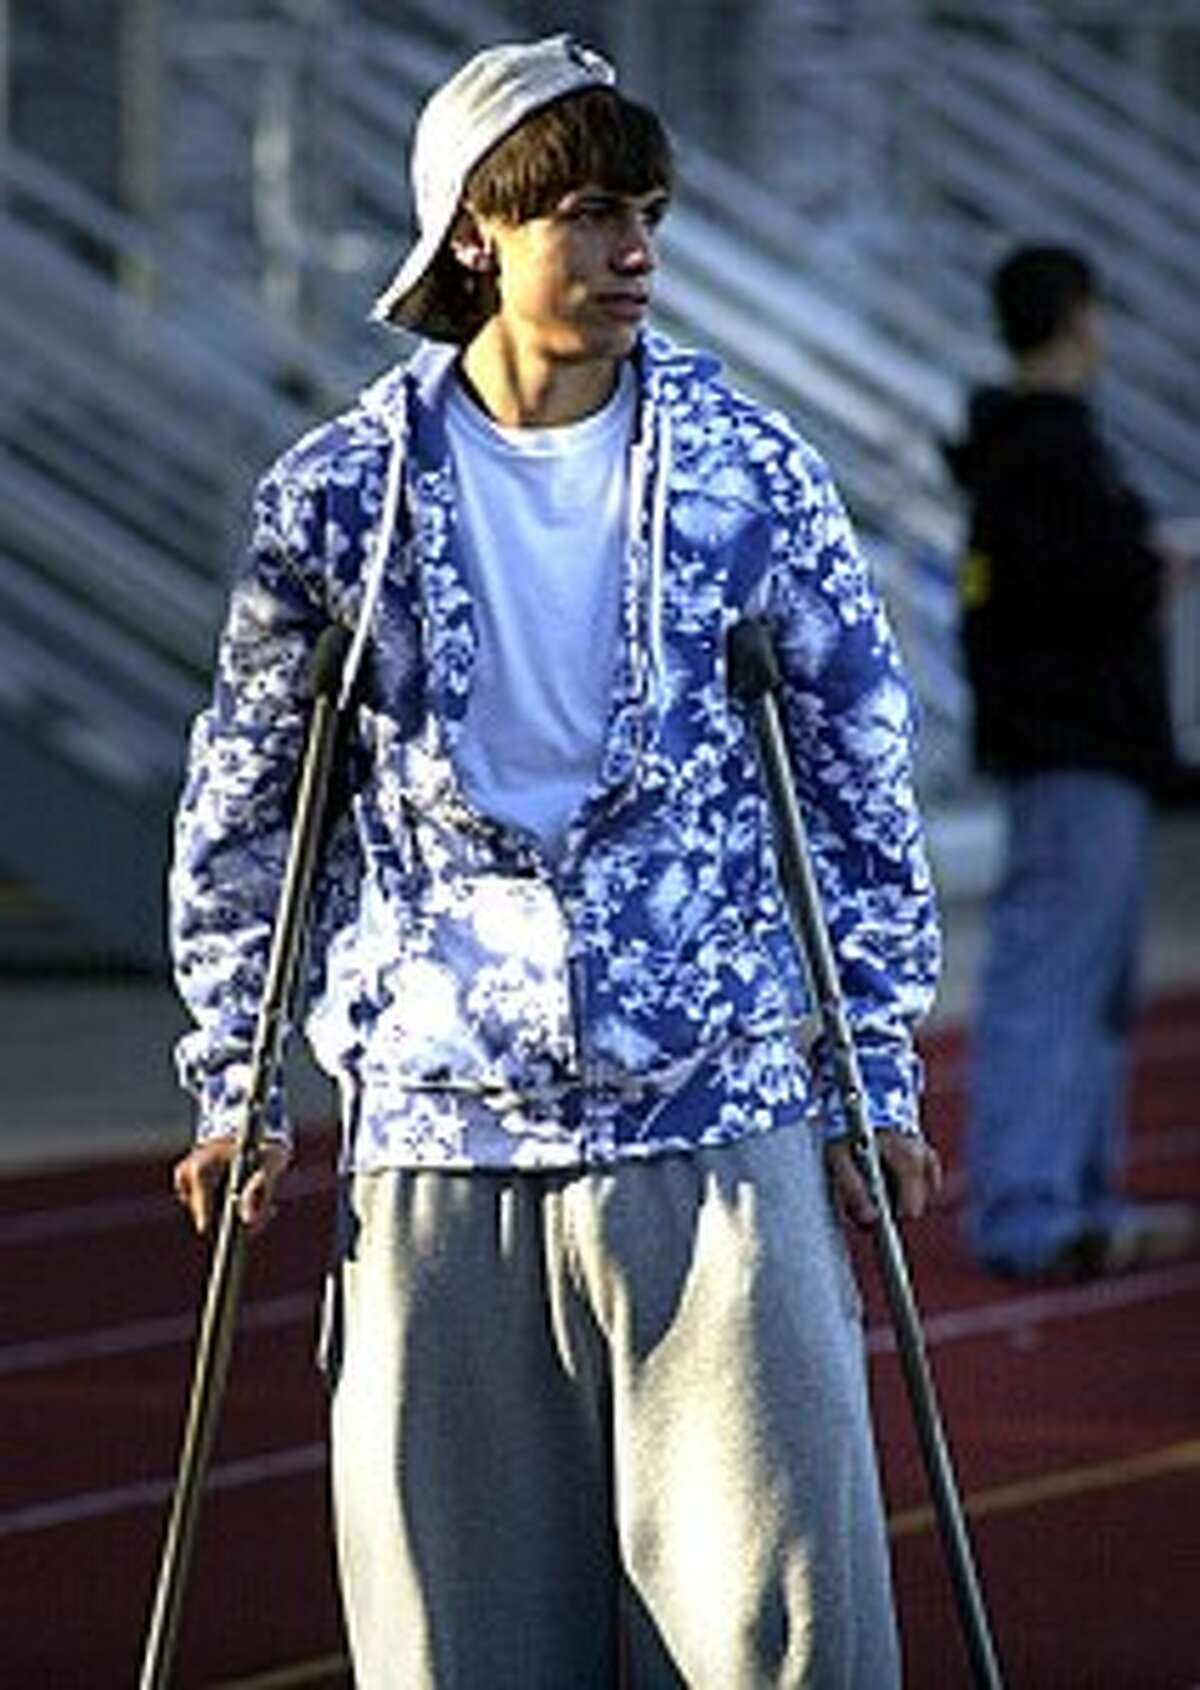 Felipe spotted on crutches